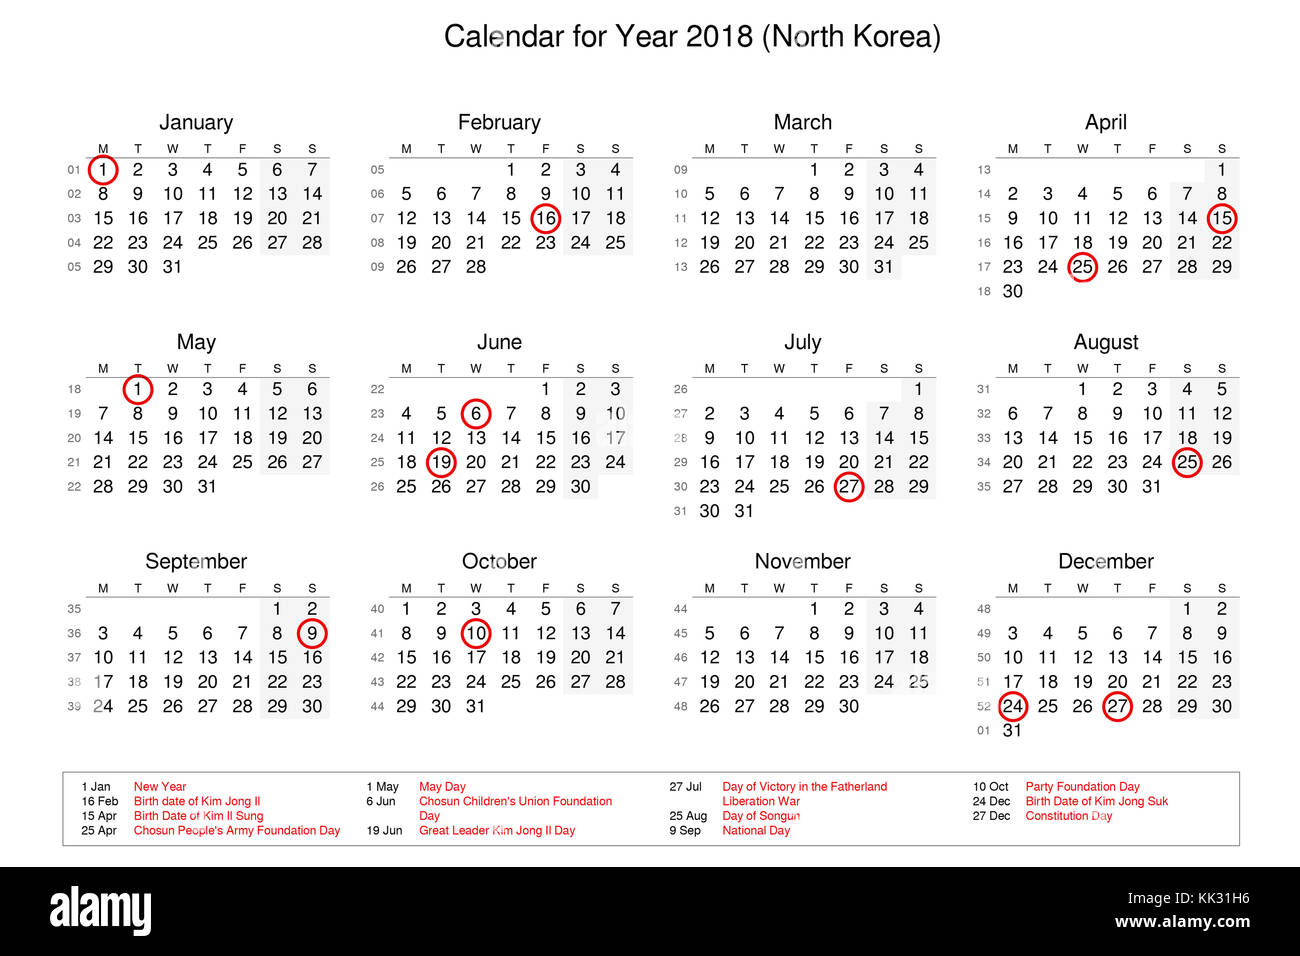 calendar of year 2018 with public holidays and bank holidays for north korea